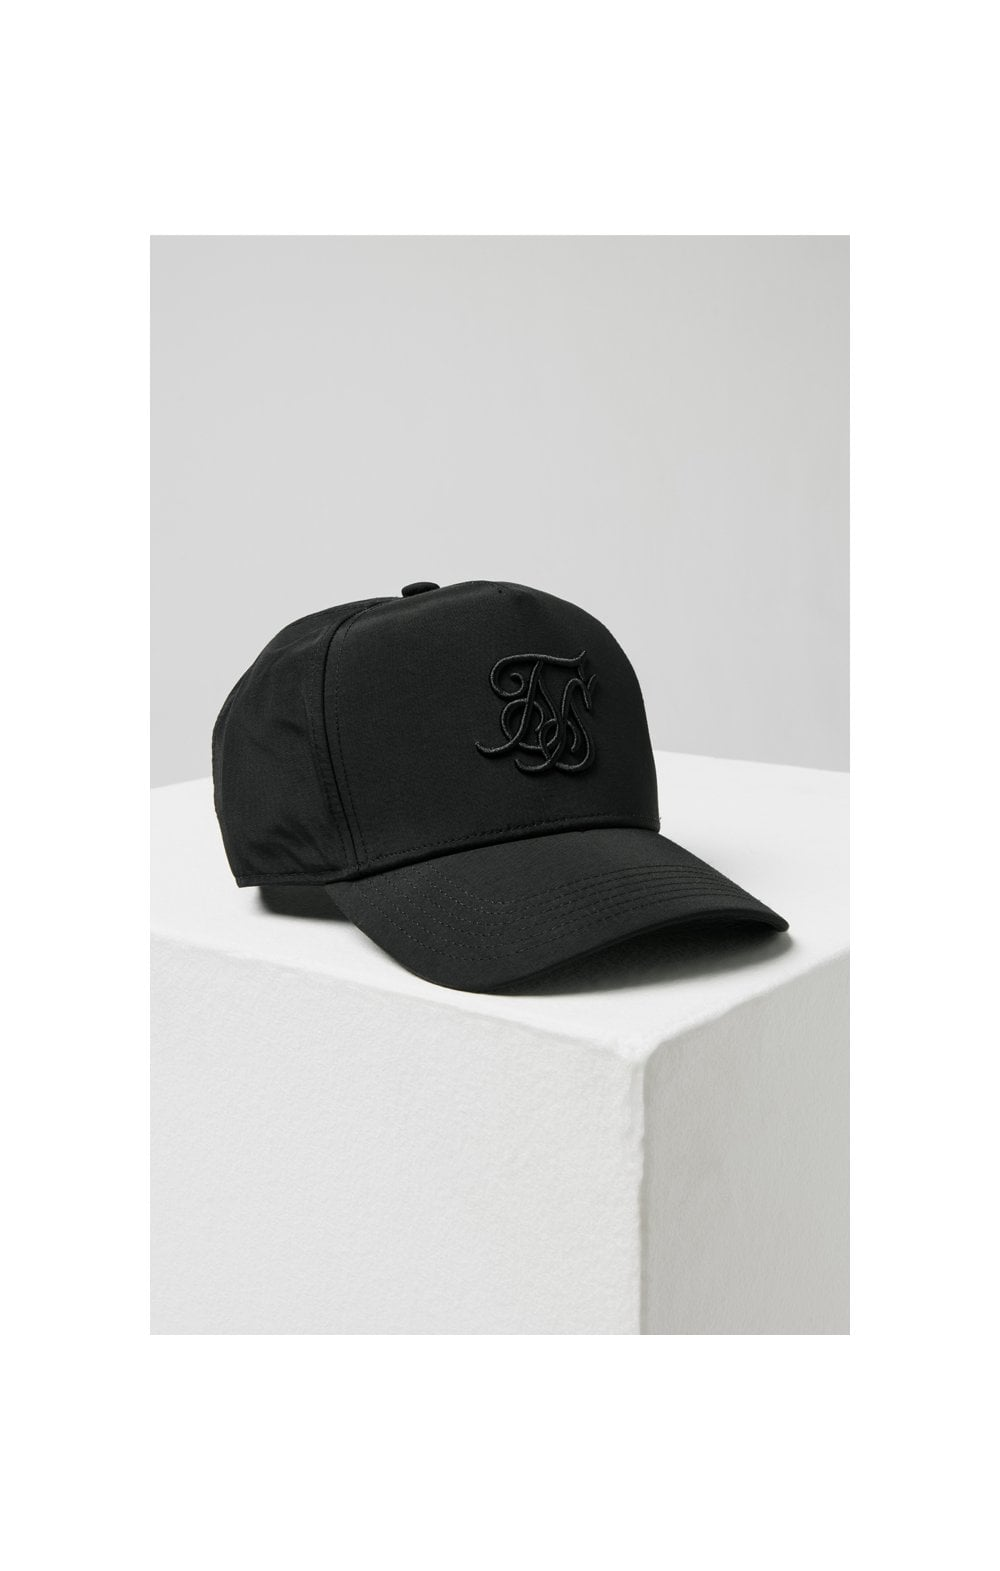 Load image into Gallery viewer, SikSilk Crushed Nylon Full Trucker - Black (4)